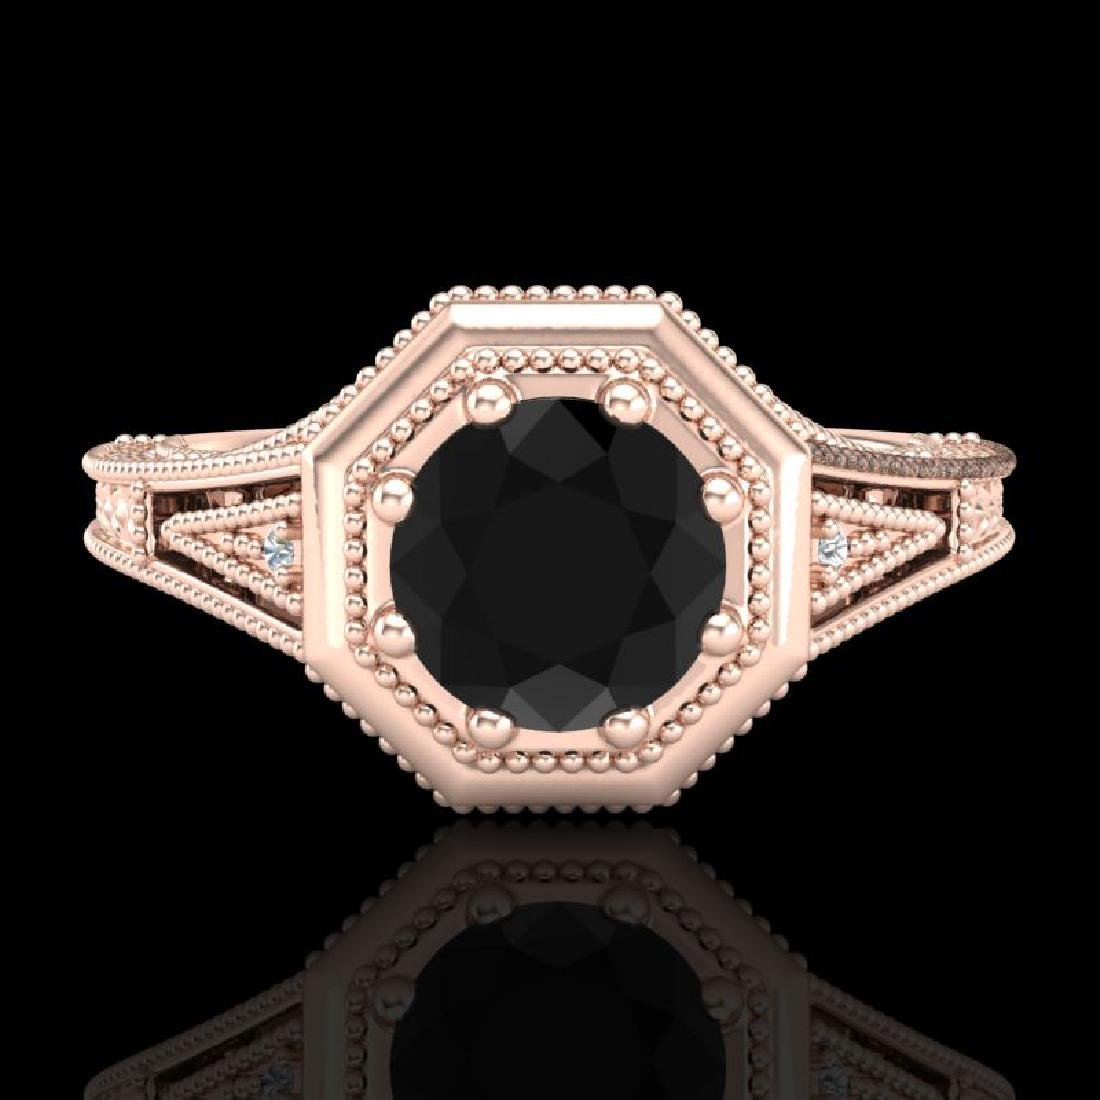 0.84 CTW Fancy Black Diamond Solitaire Engagement Art - 2